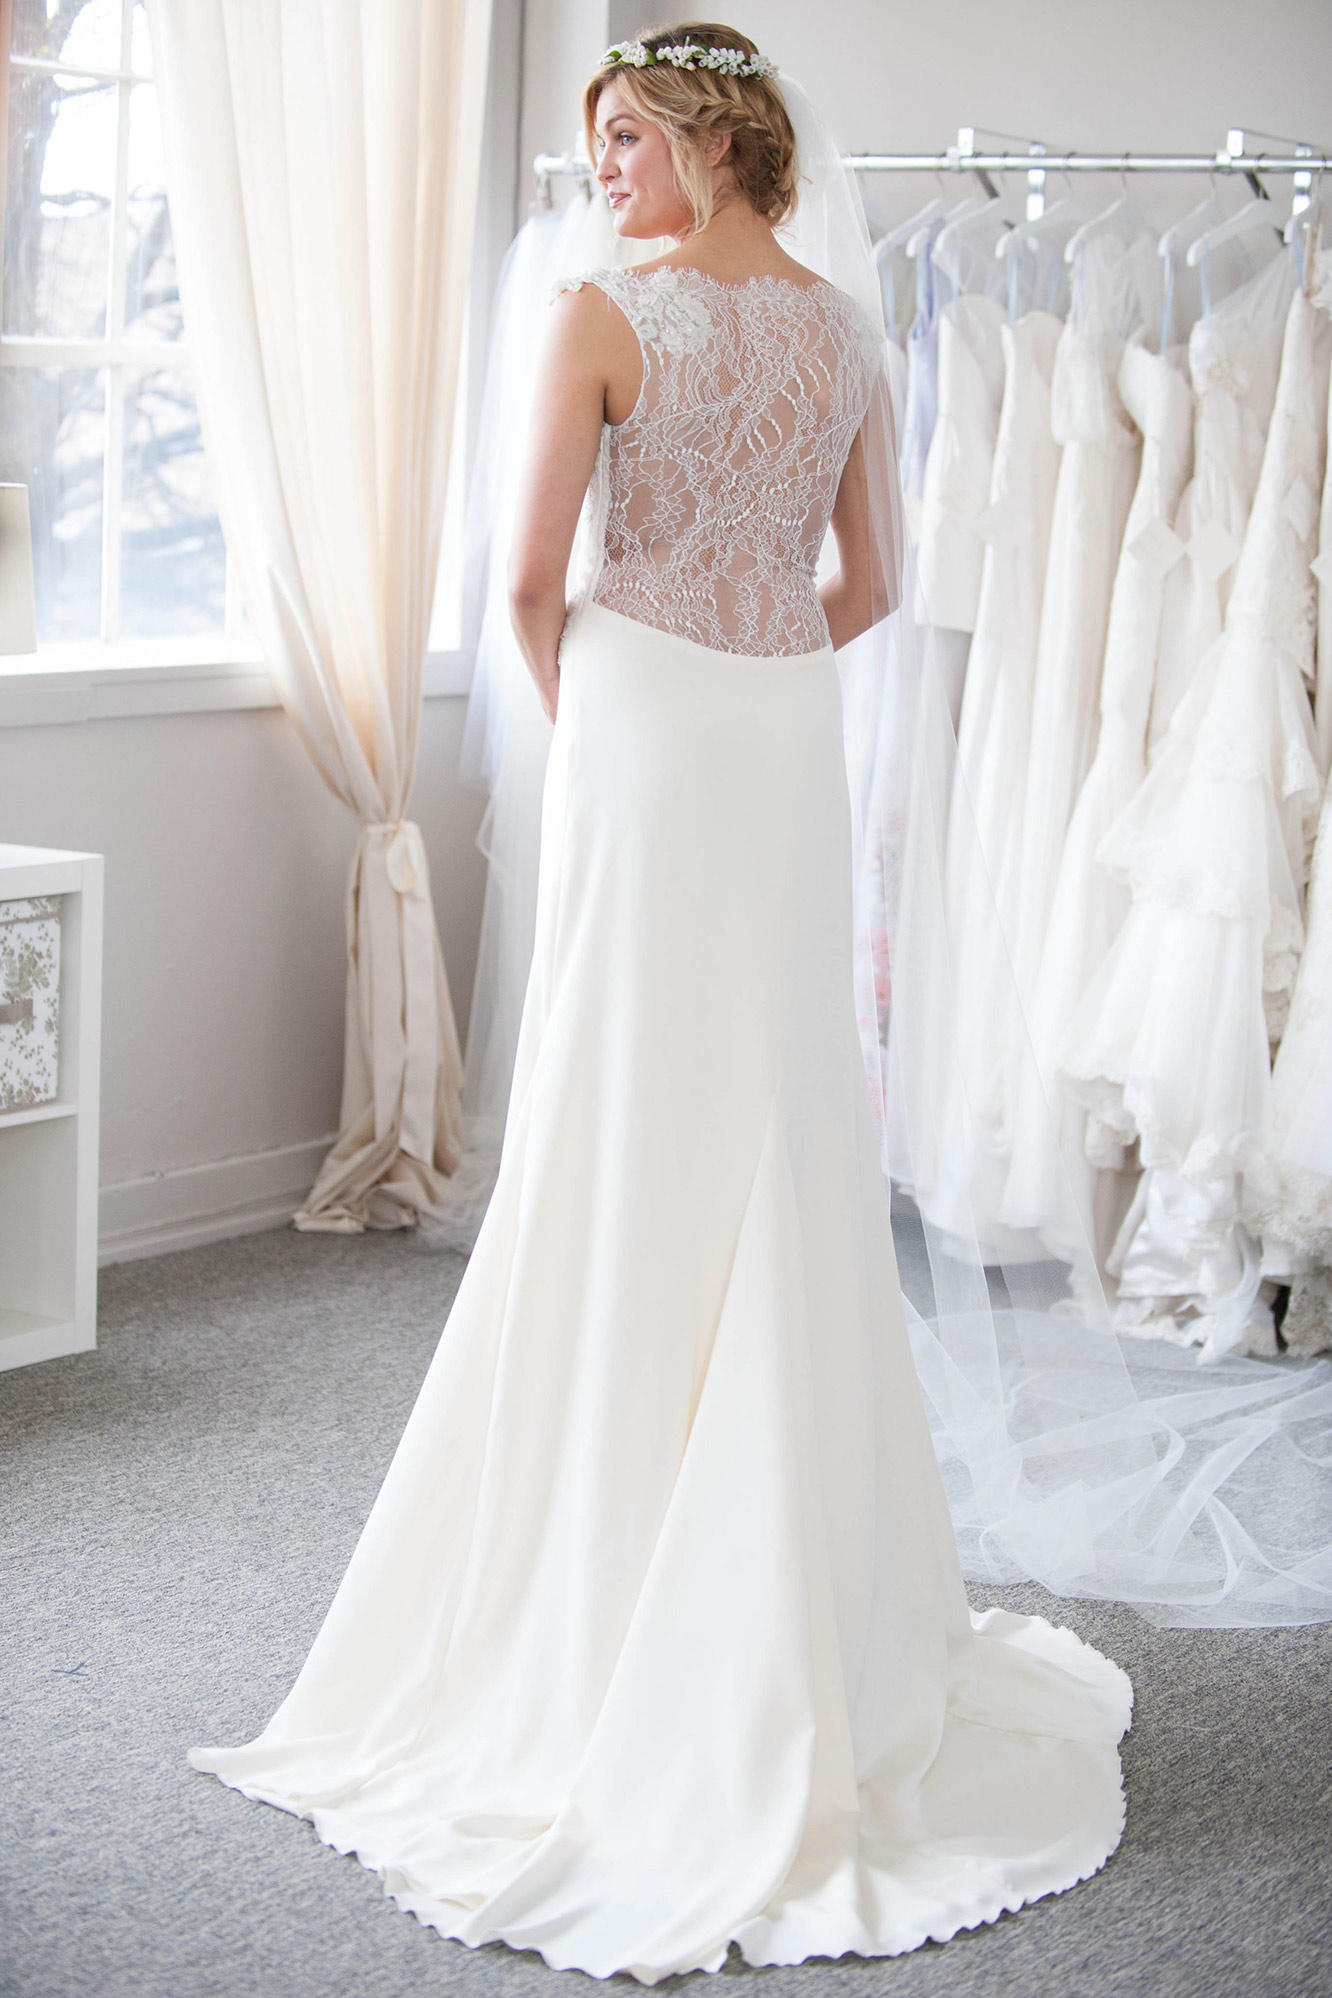 heidi s custom lace wedding dress for a country chic bride